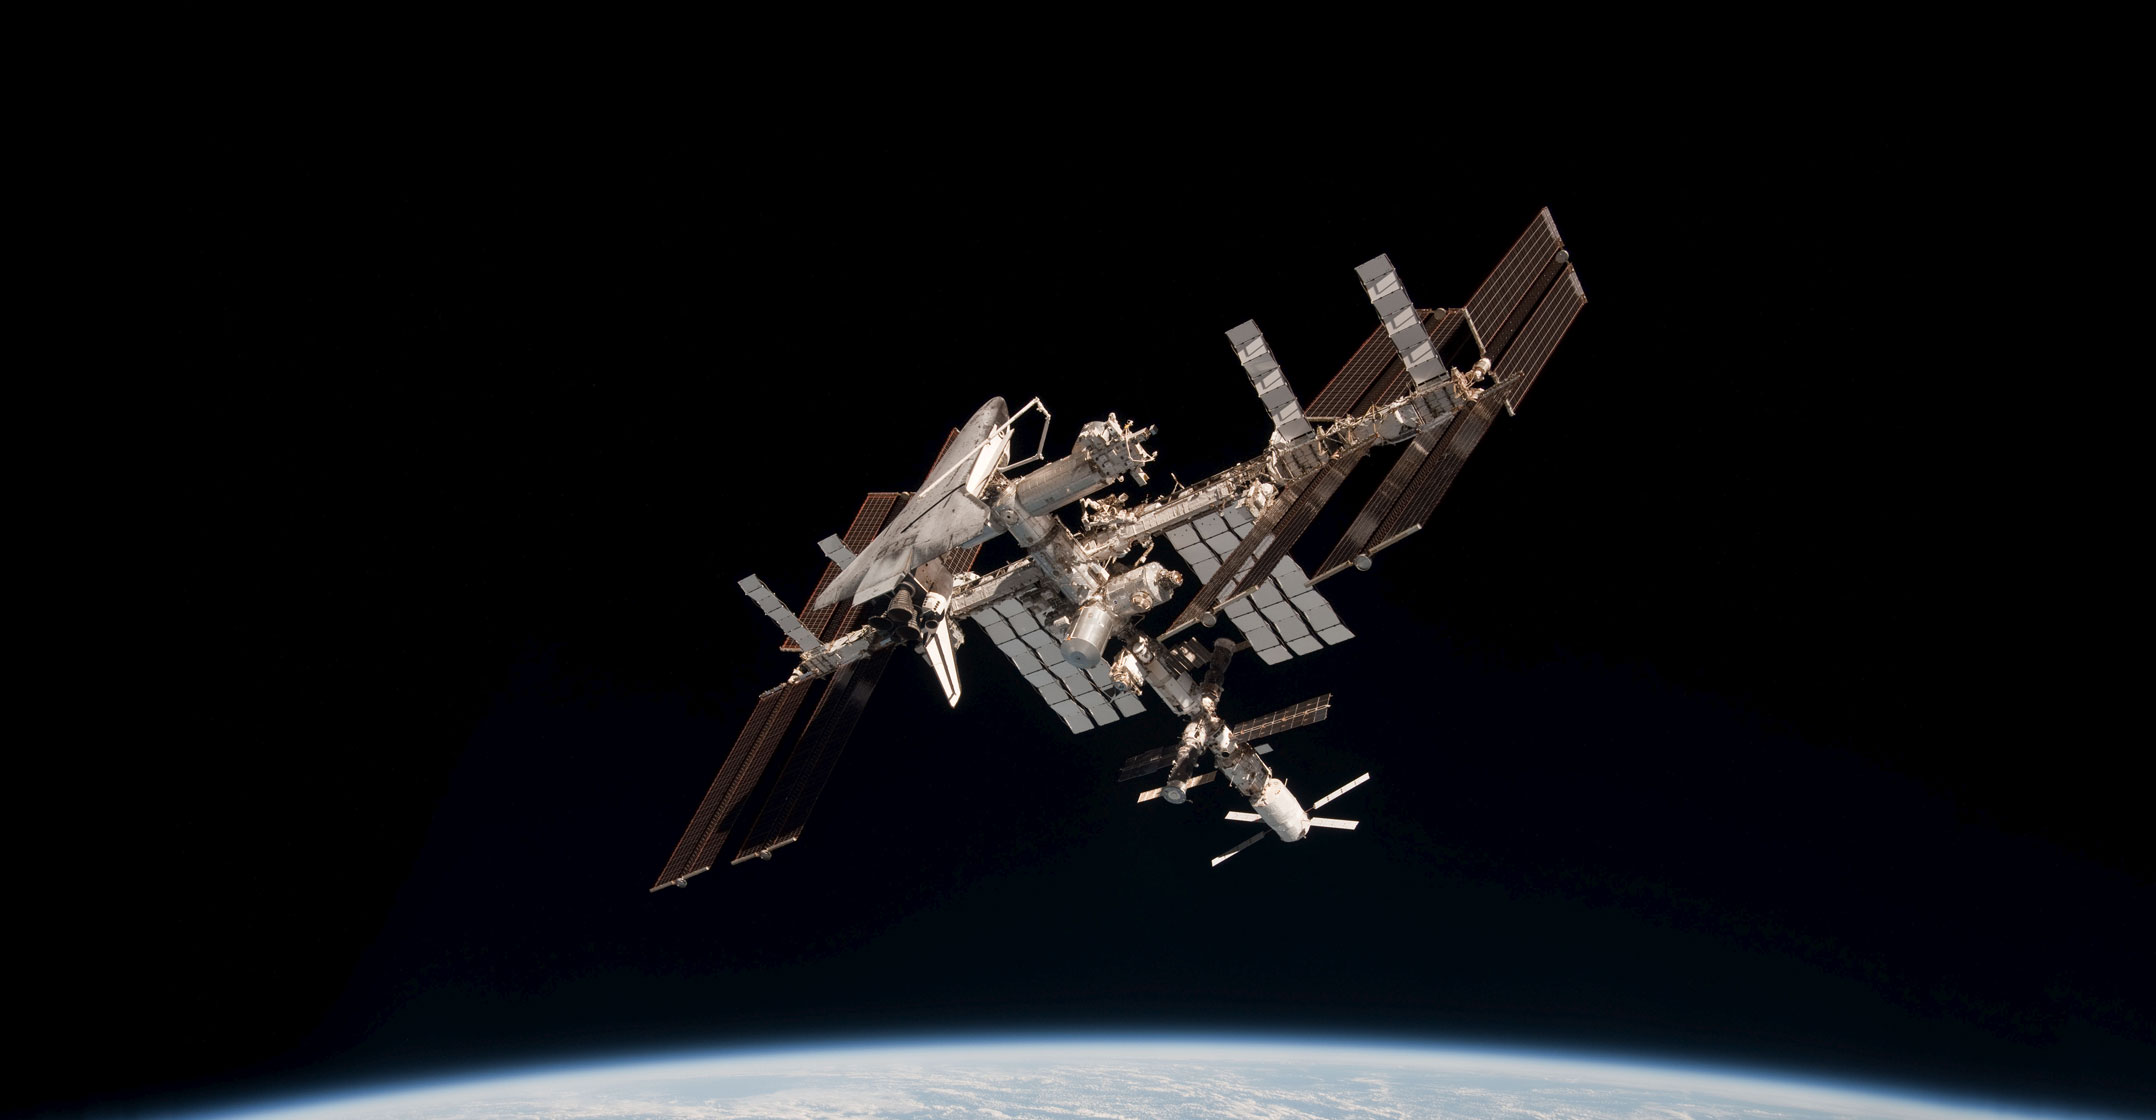 Sa built nanosatellite placed into orbit techcentral for When was the international space station built